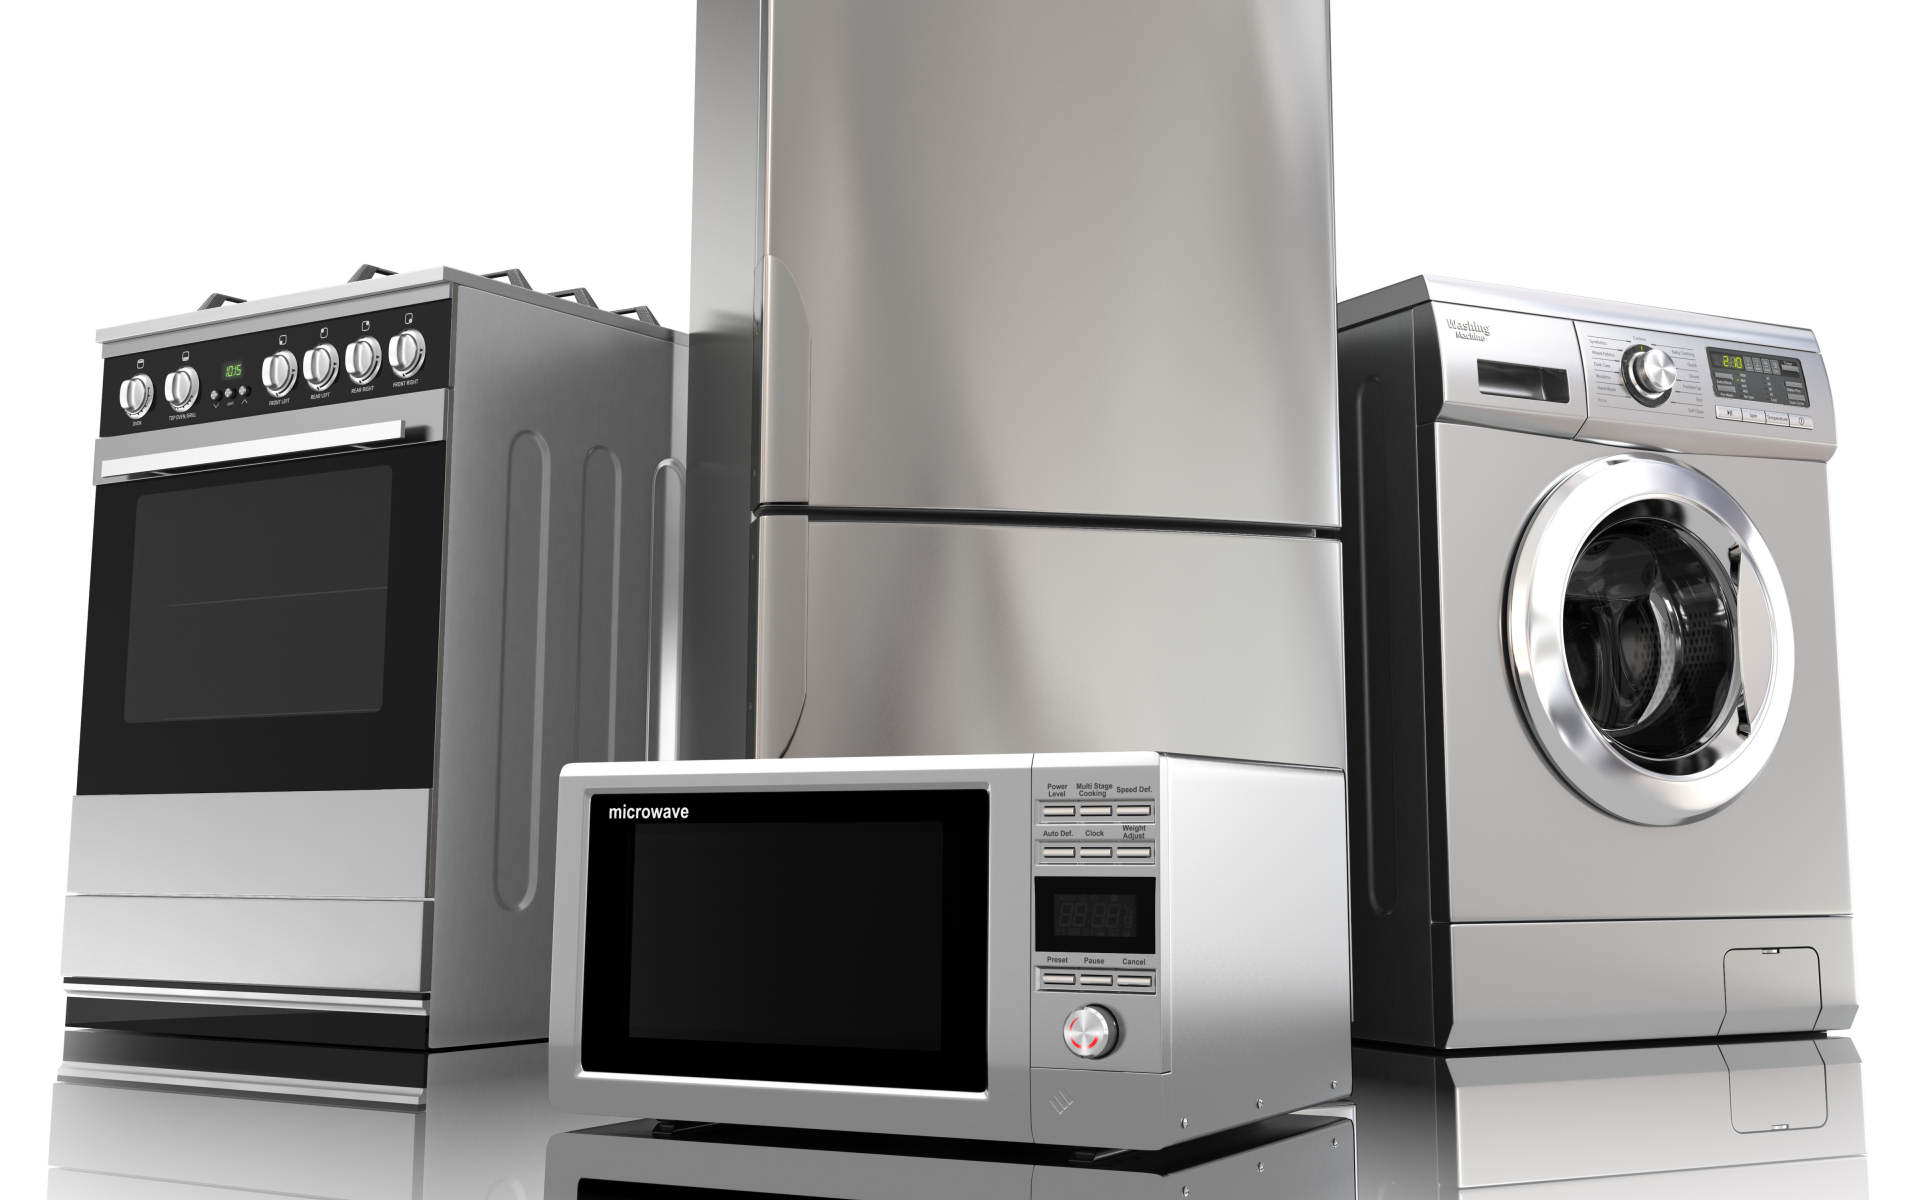 Complete Range of Appliances